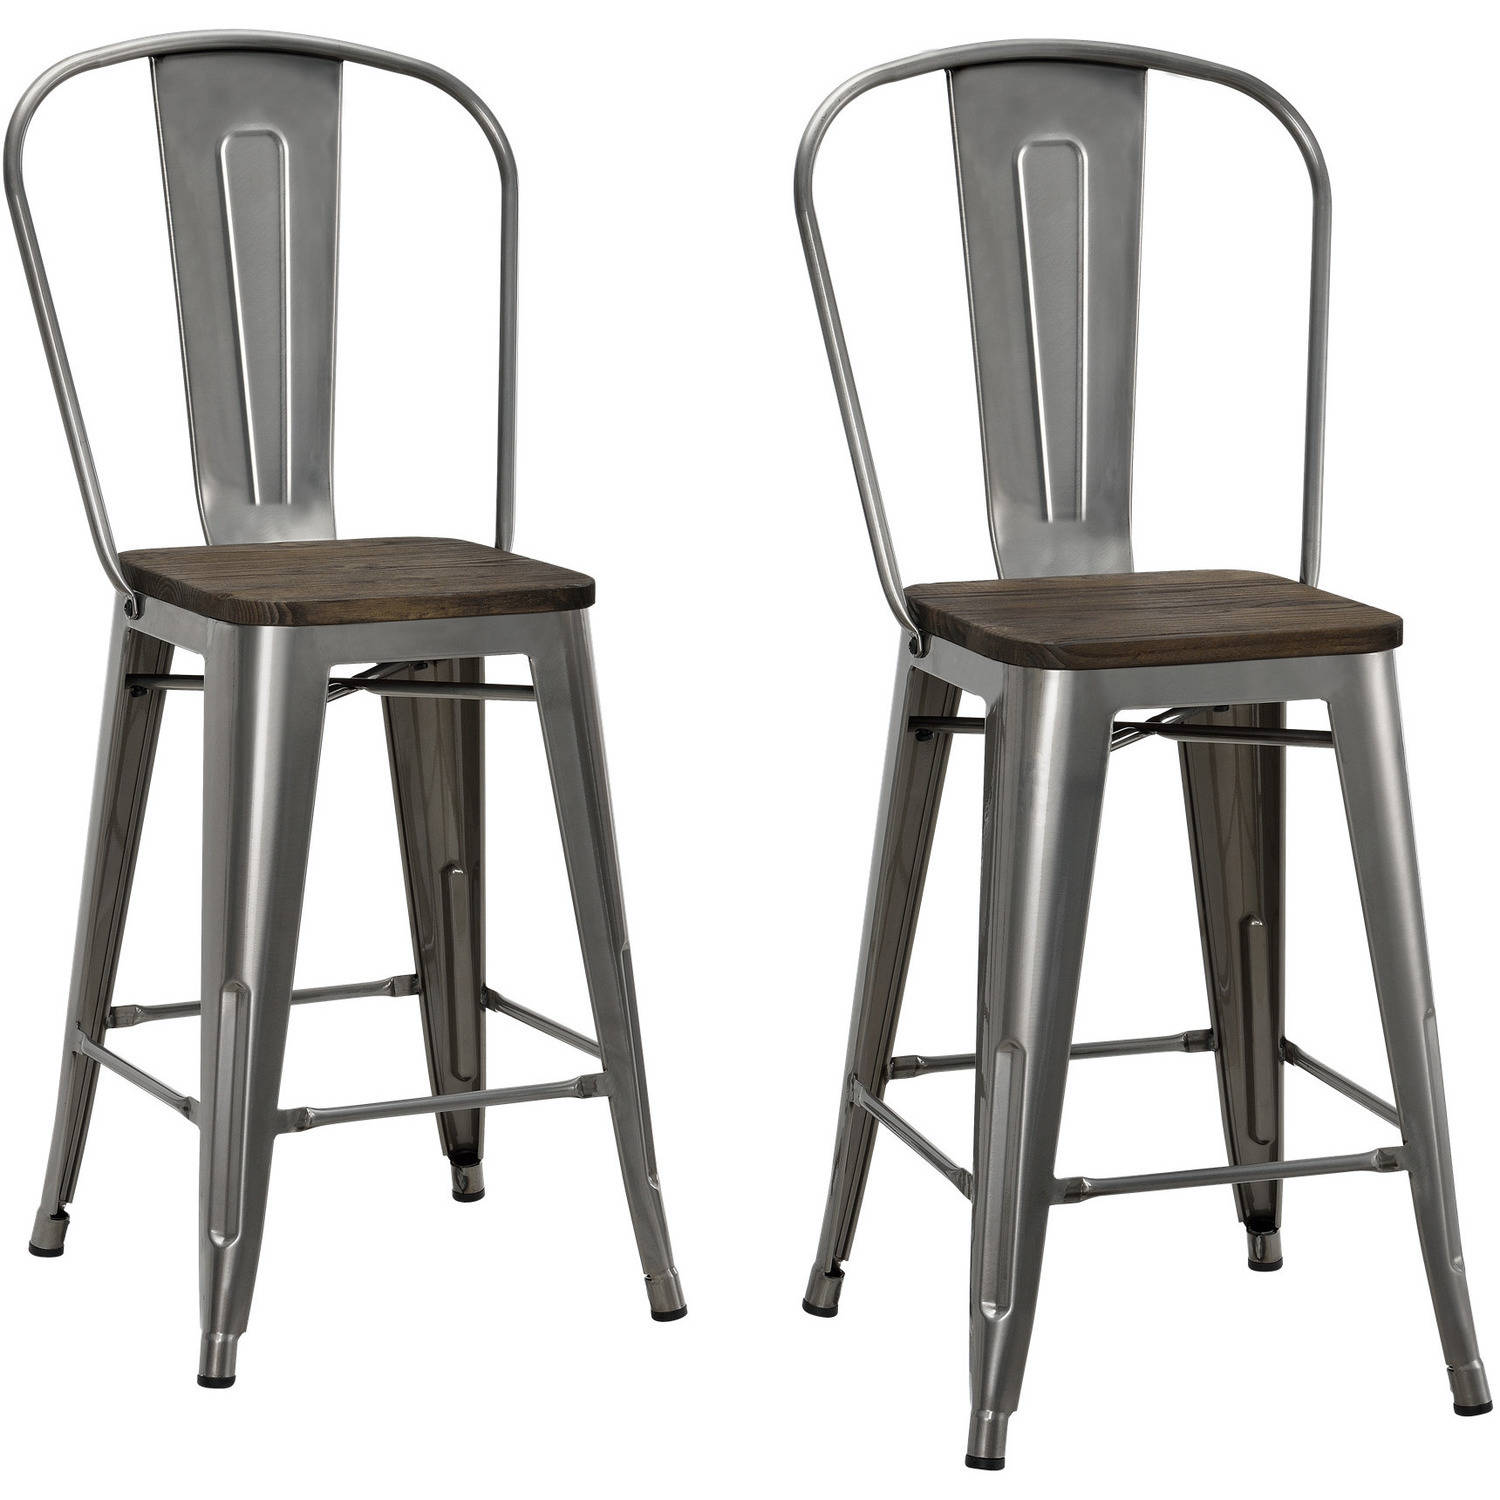 "Dorel Home Products Luxor 24"" Metal Counter Stool with Wood Seat"